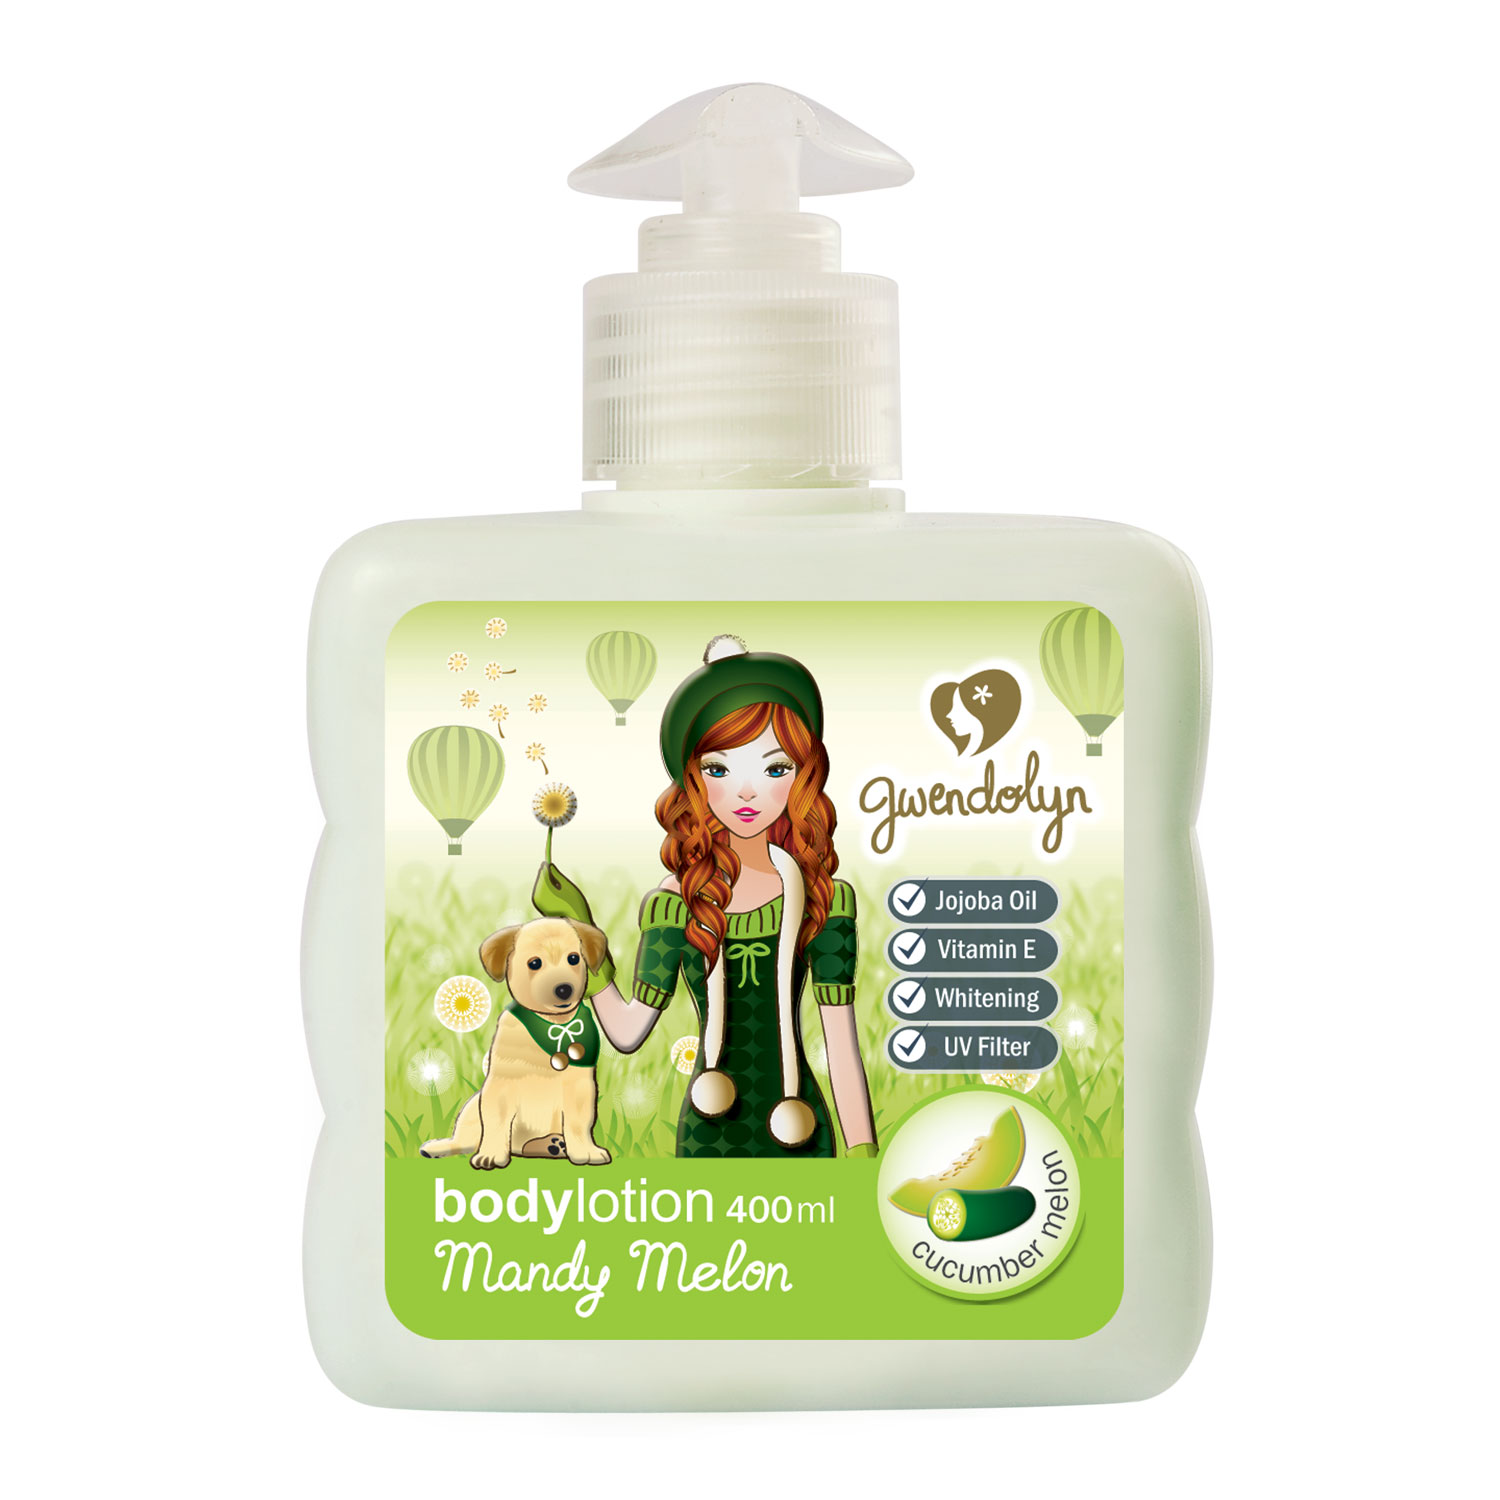 Gwendolyn Body Lotion Mandy Melon 400ml